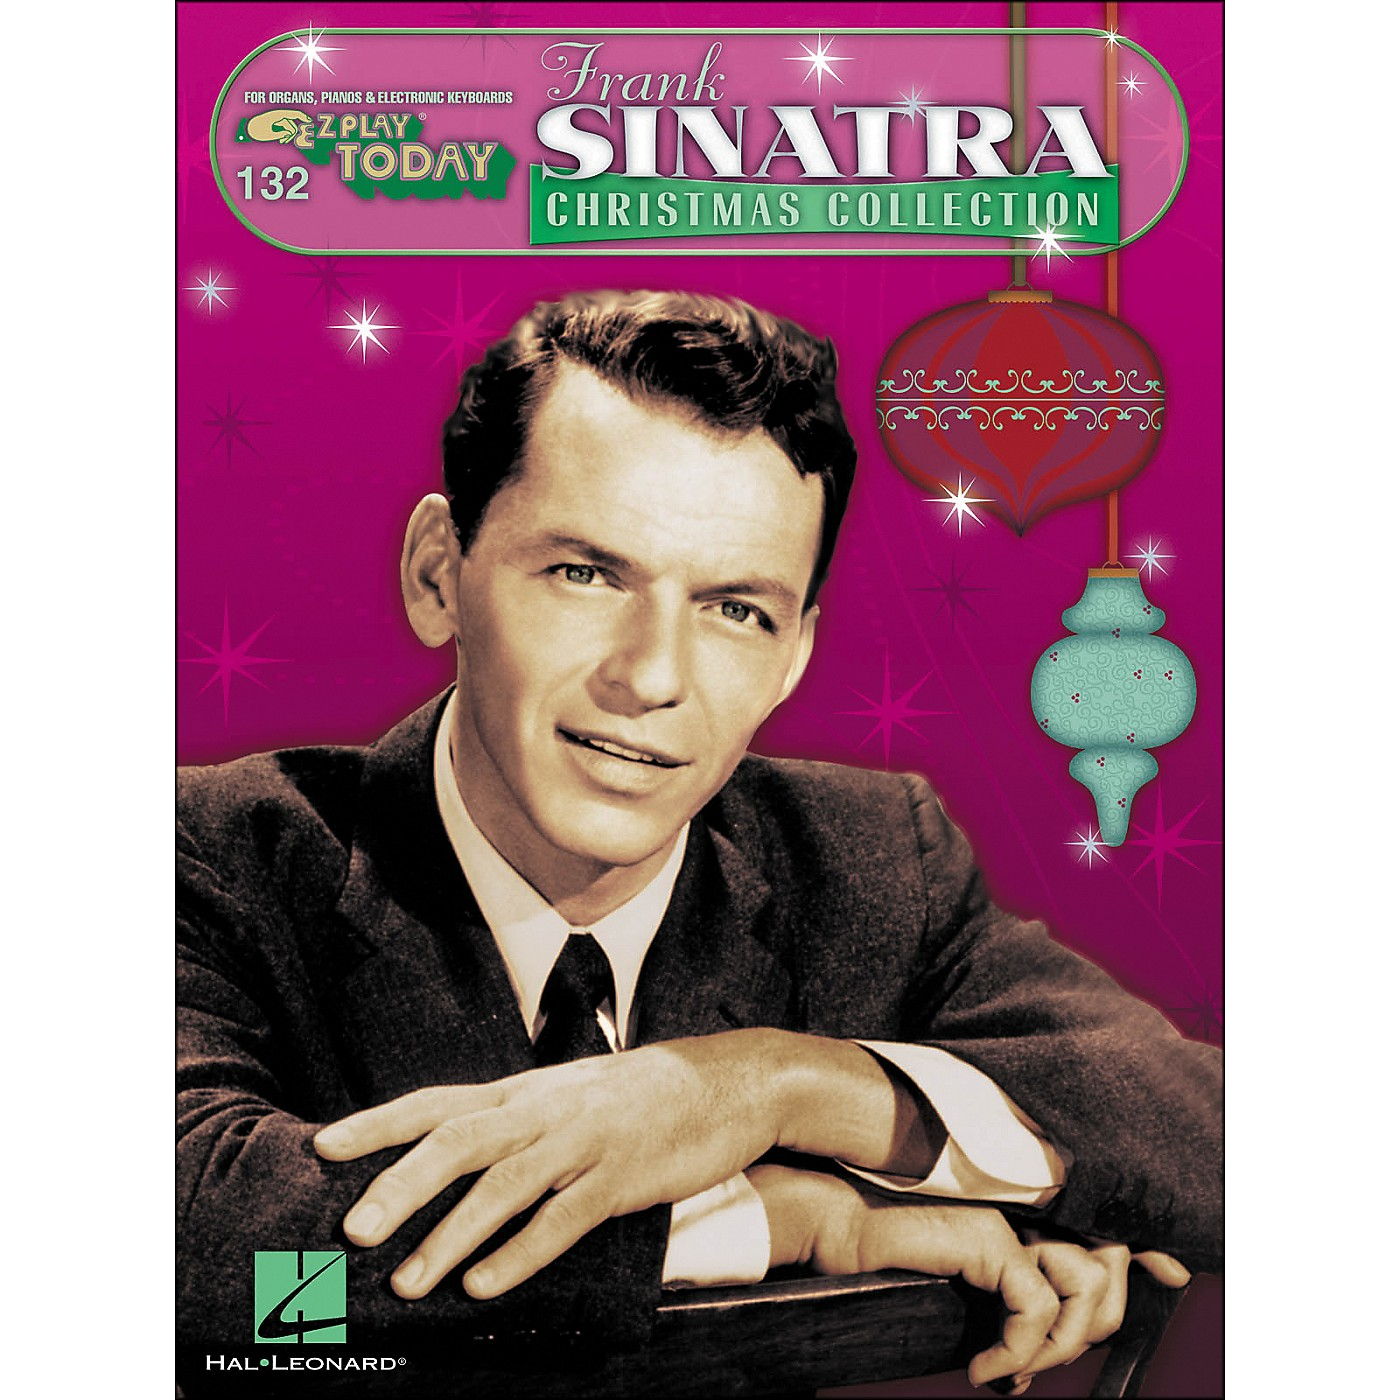 Hal Leonard Frank Sinatra Christmas Collection E-Z Play 132 thumbnail